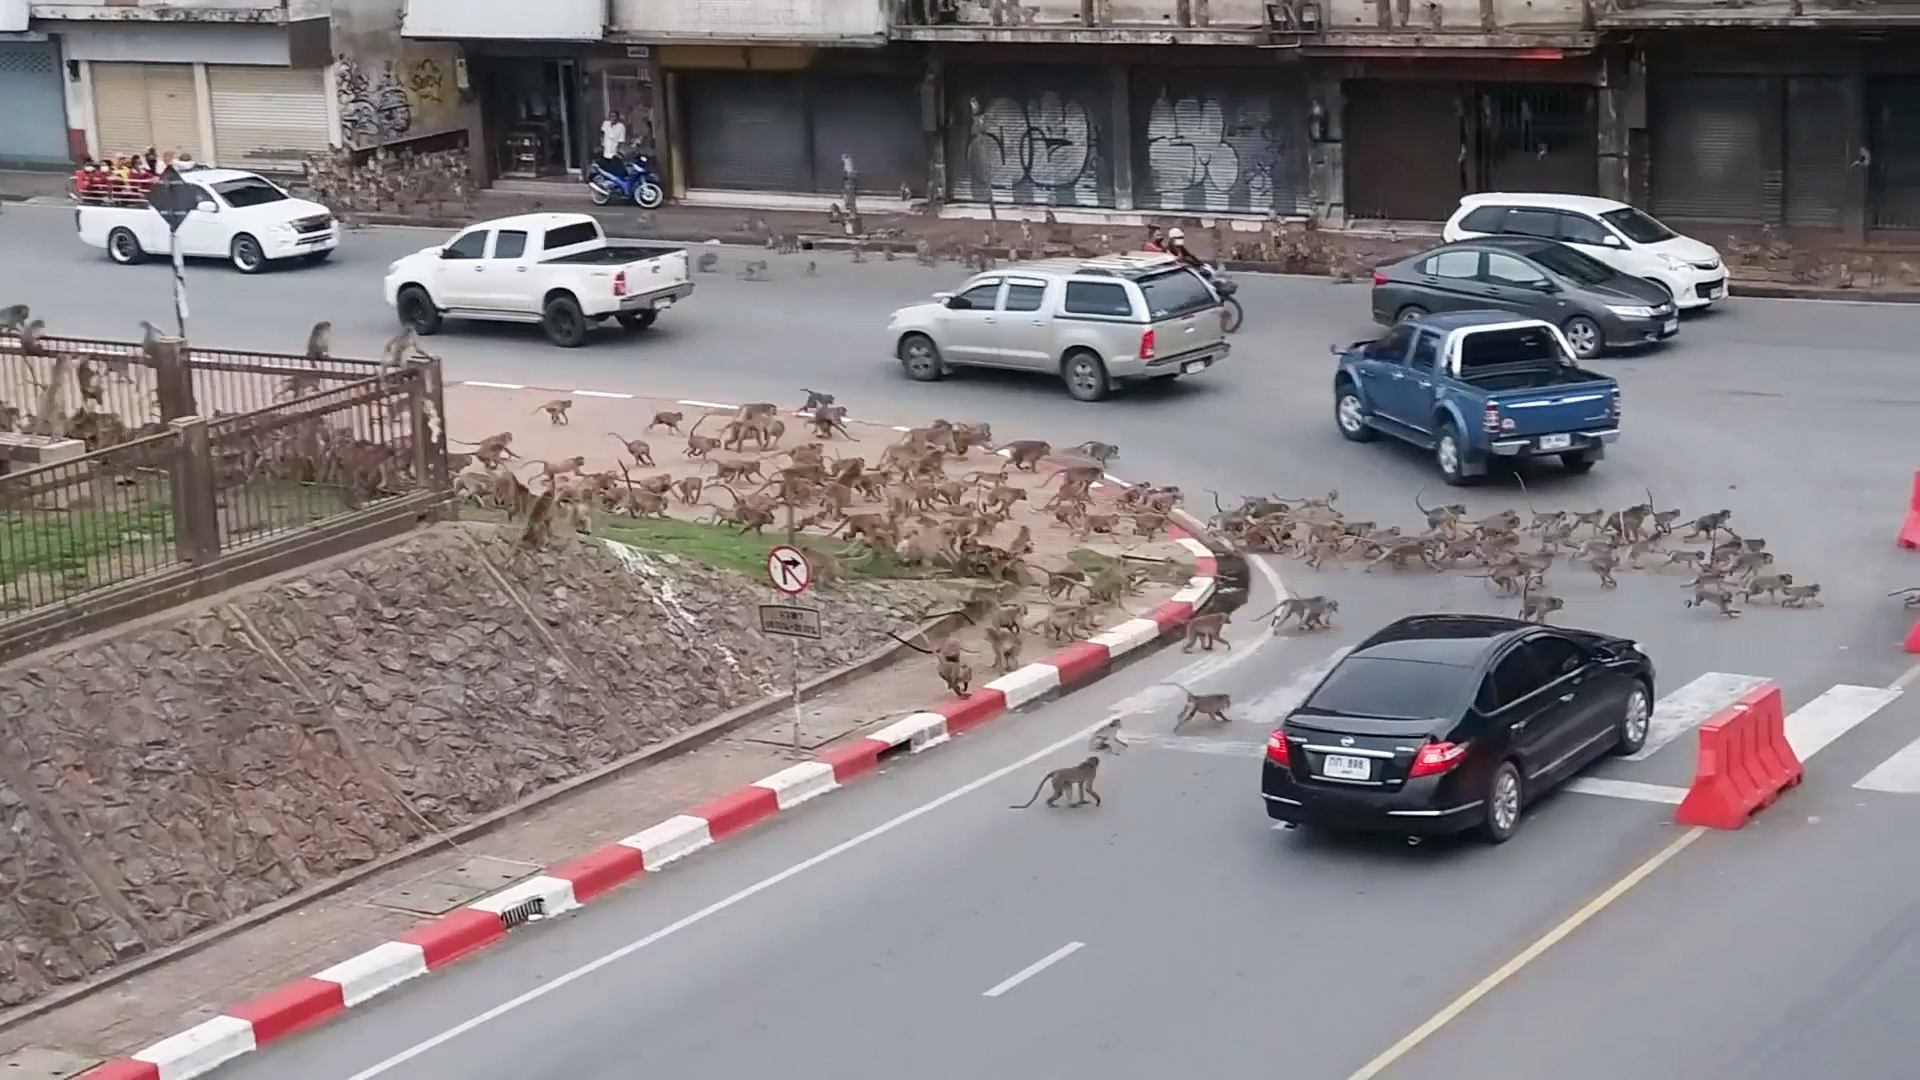 Rival wild monkeys have huge gang fight in front of shocked drivers